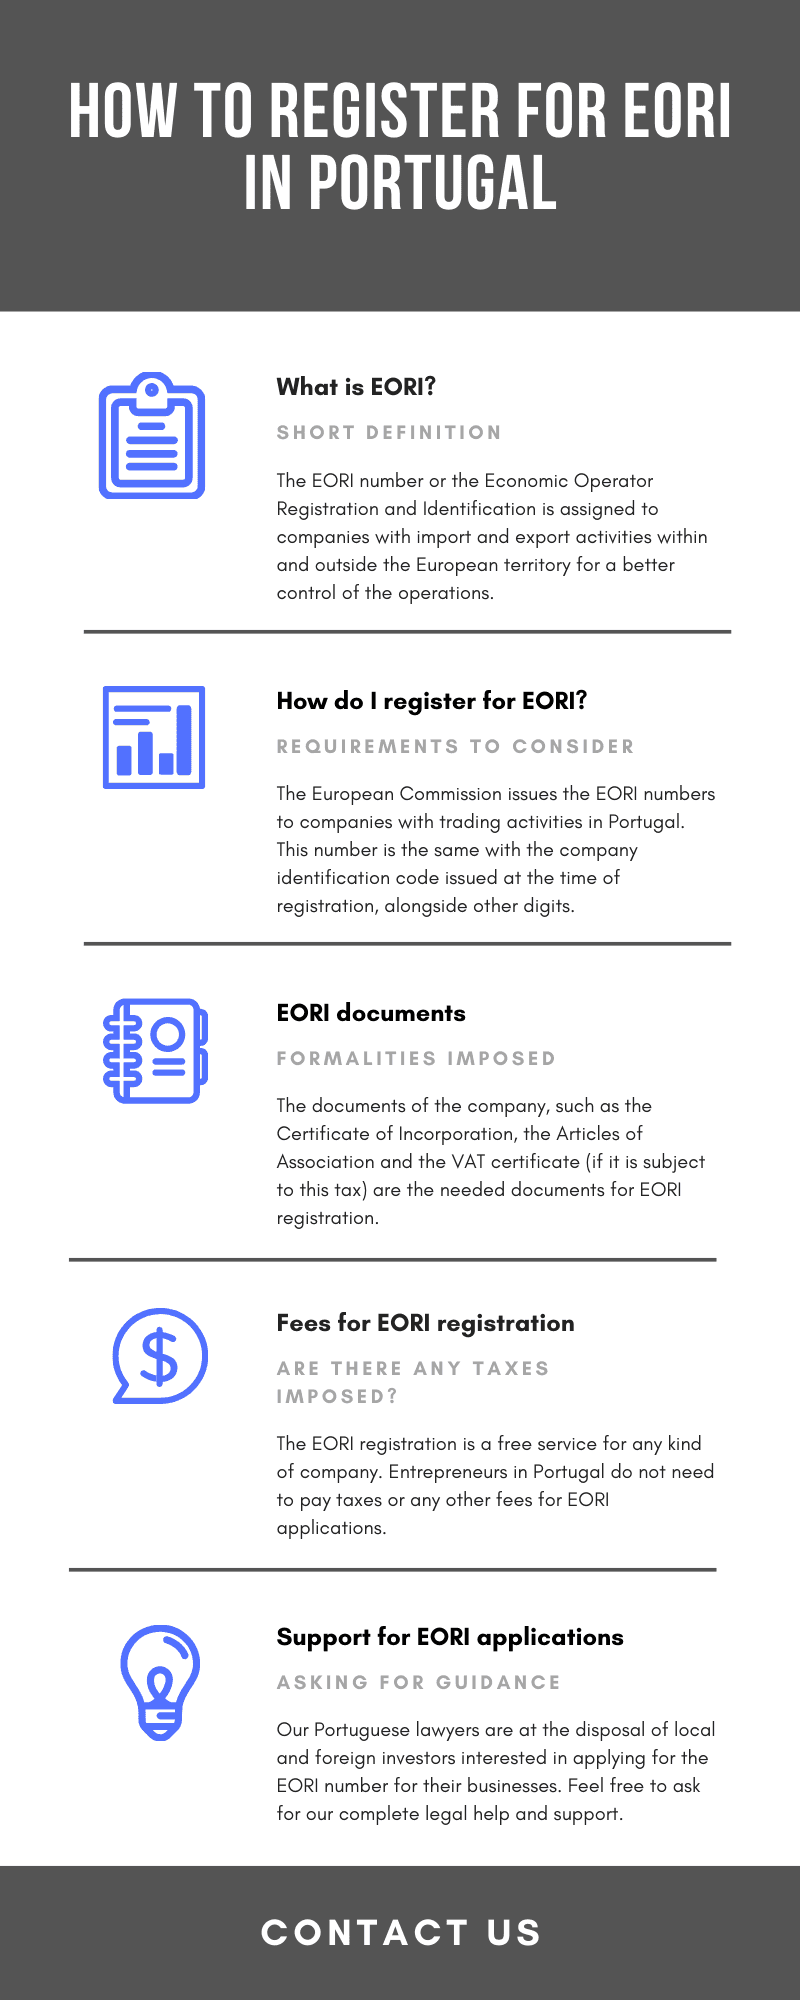 How to register for EORI in Portugal1.png